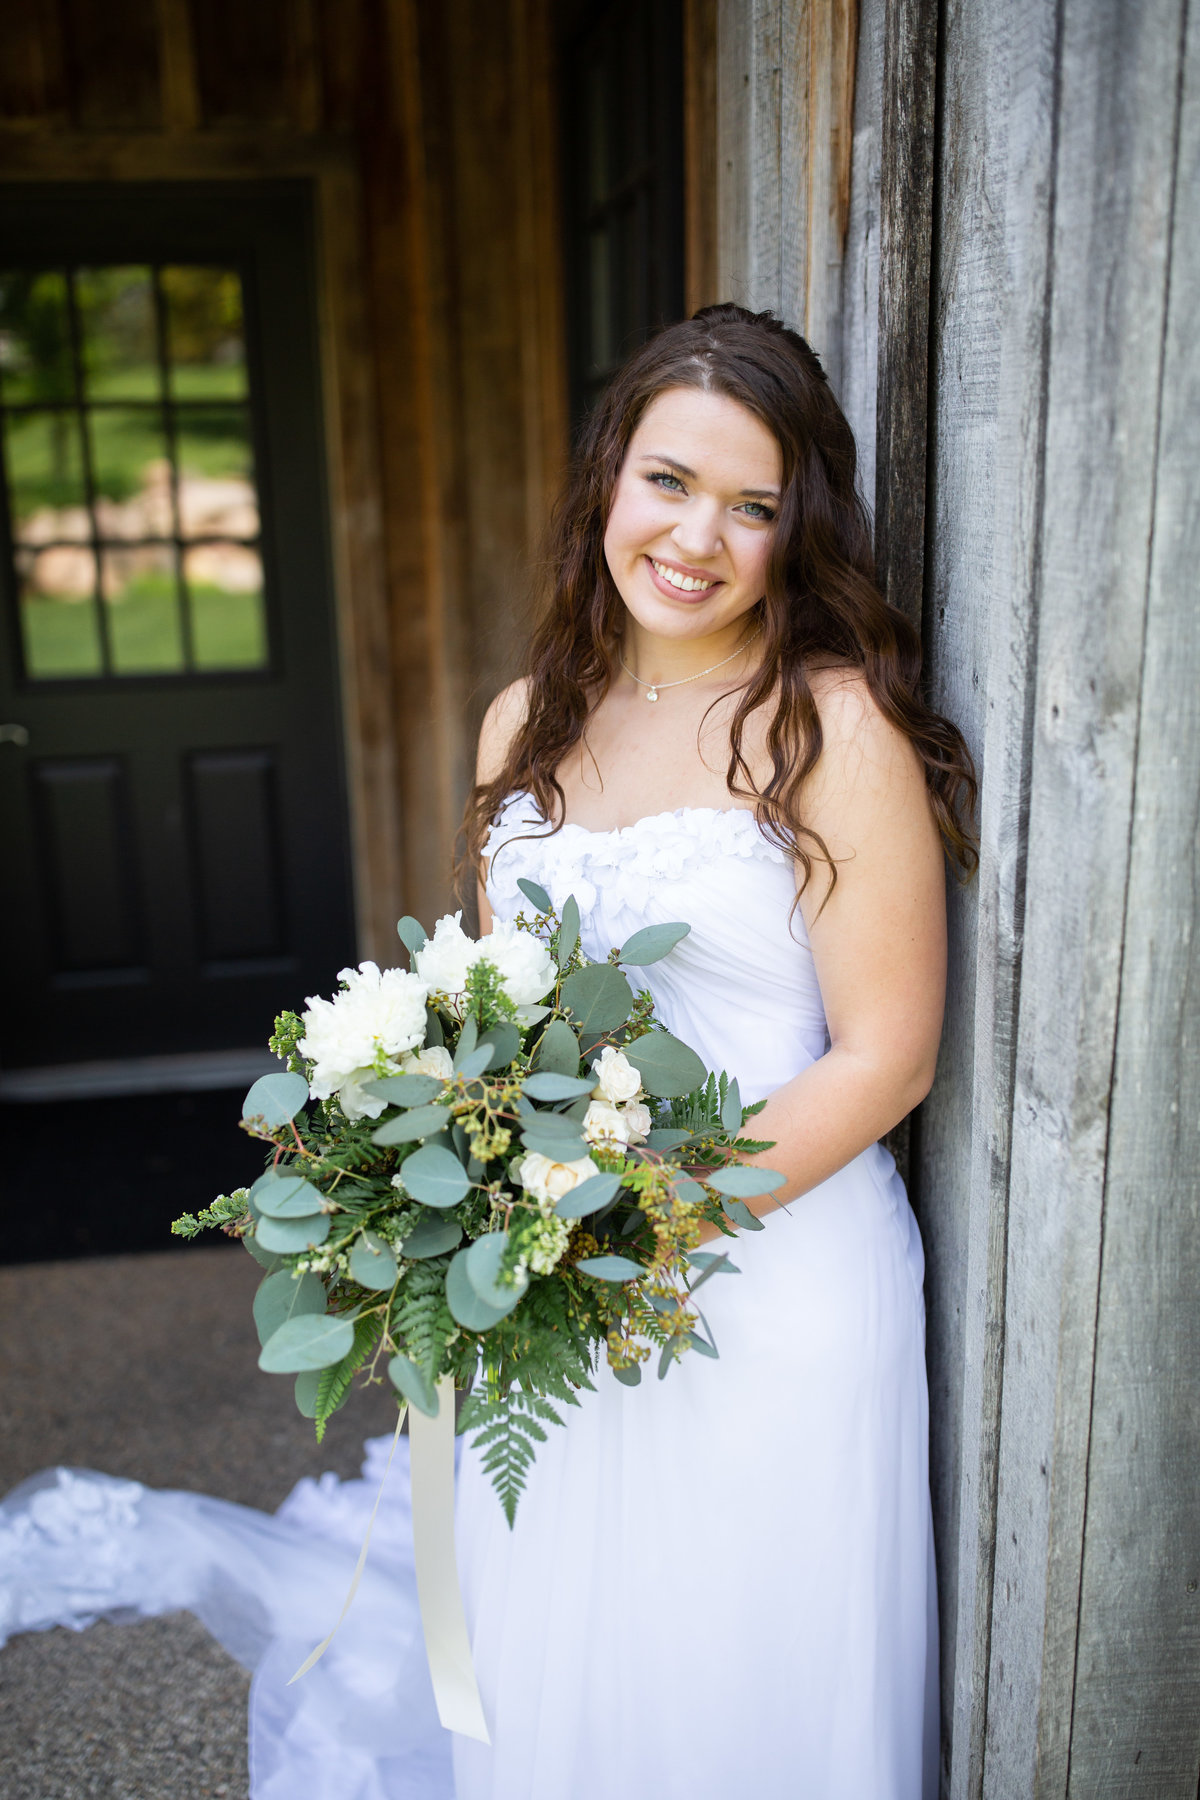 Wedding bride with flowers Sawatski-2